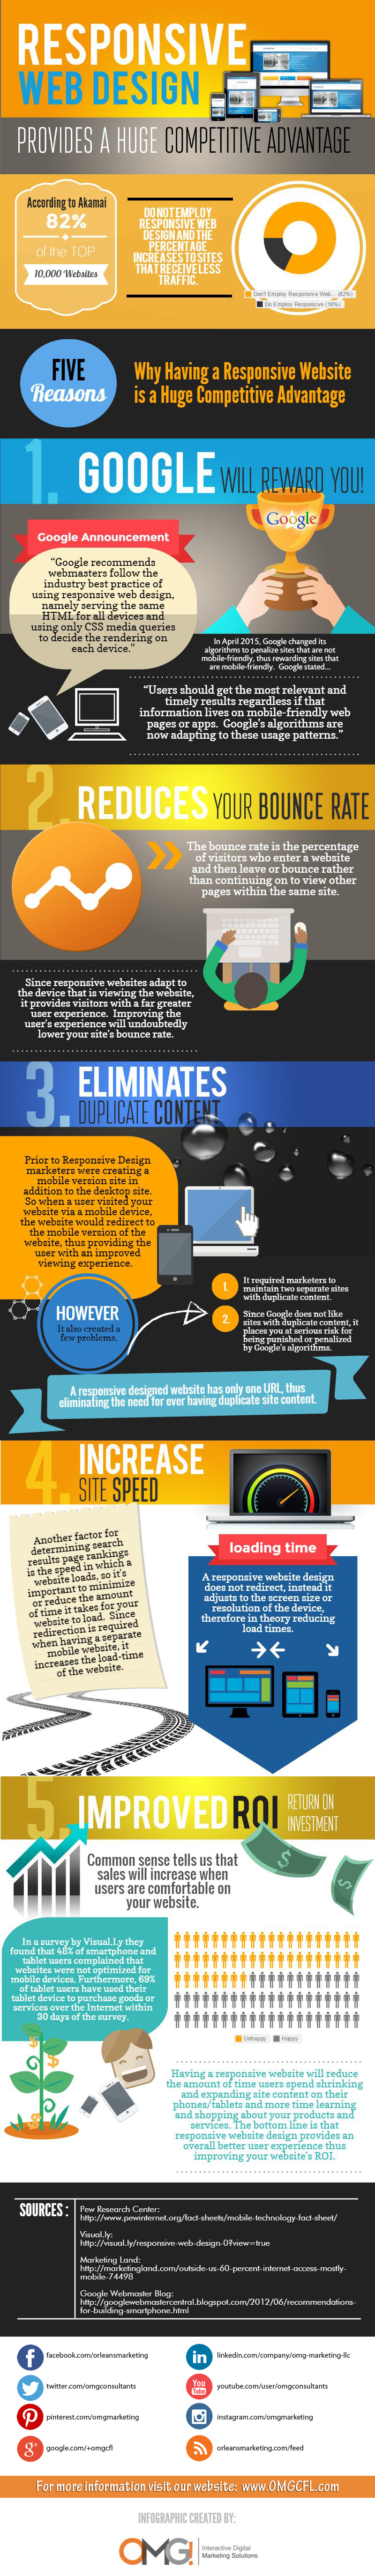 Responsive Web Design Advantages